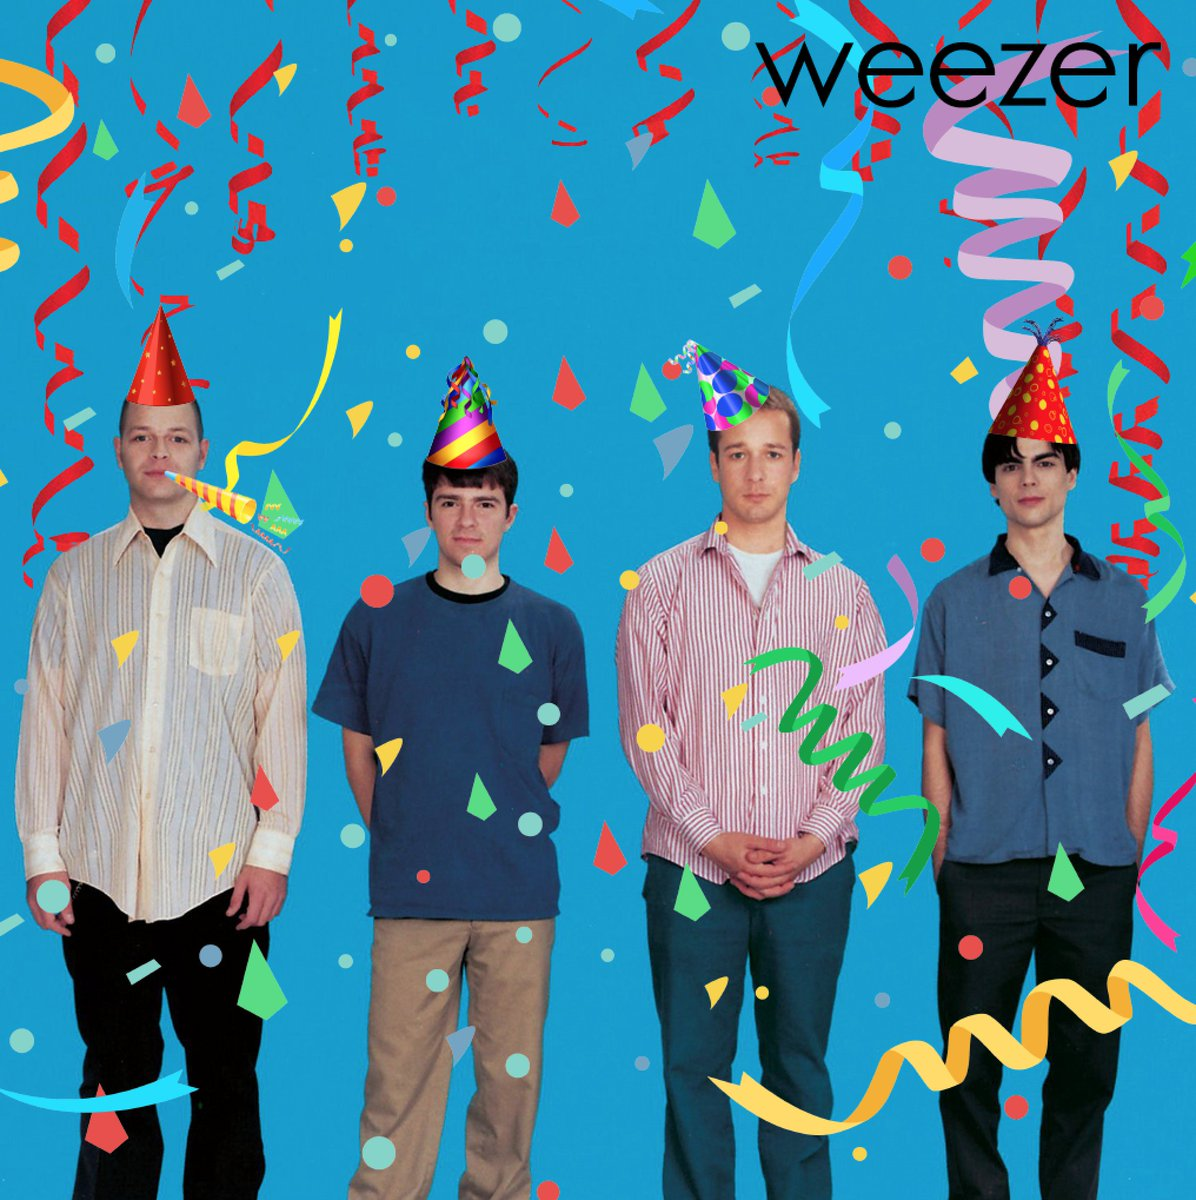 Blue Album came out 22 years ago today. You're my boy blue! https://t.co/K73IDWqtSZ